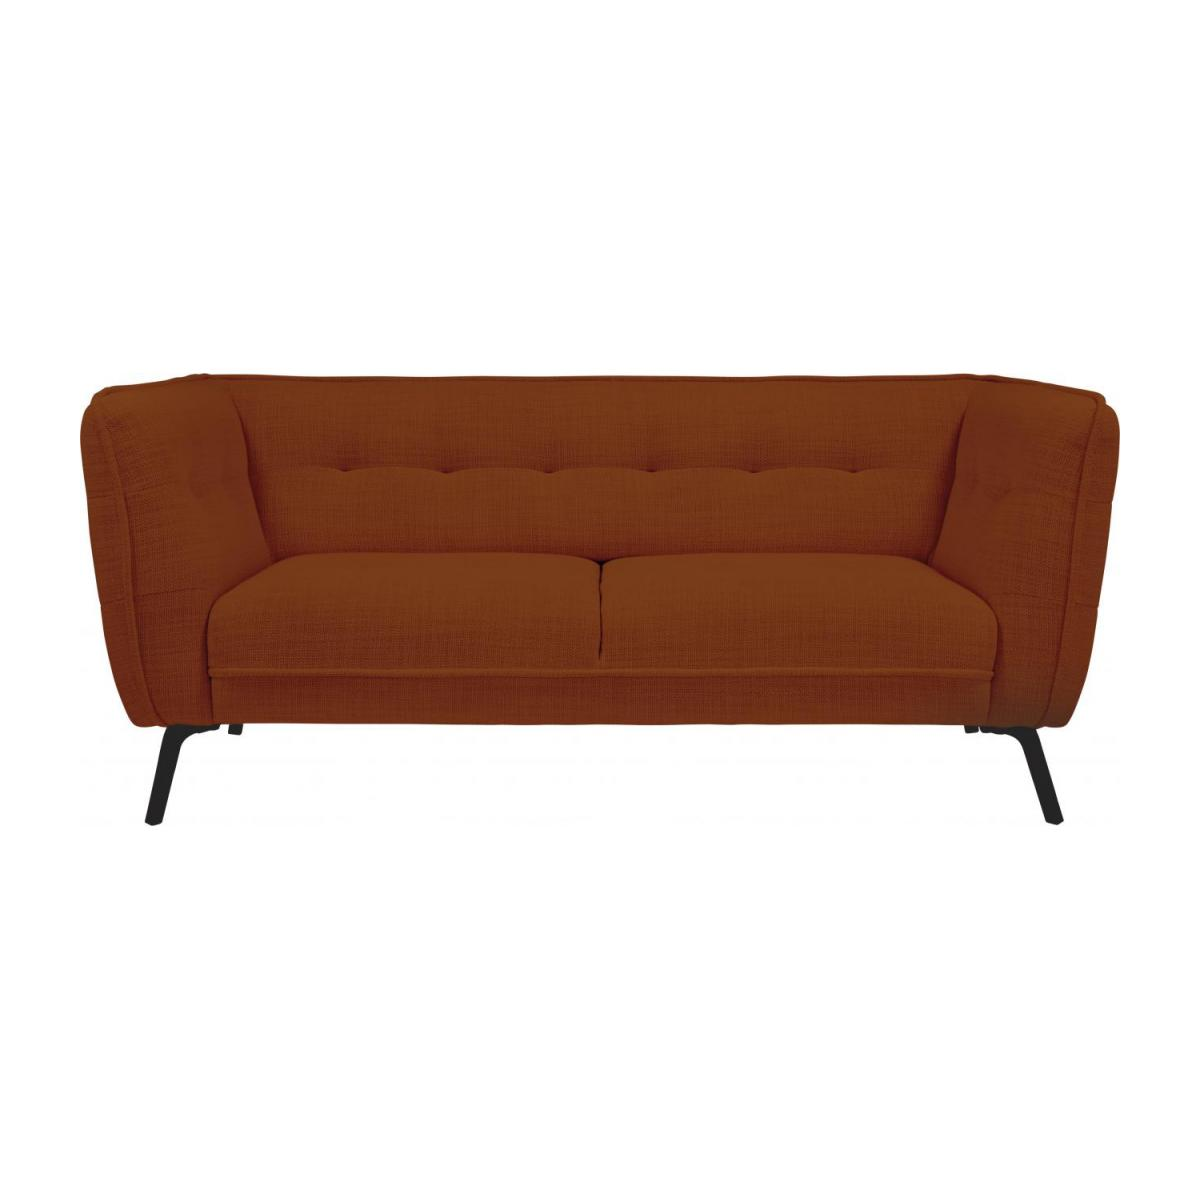 2 seater sofa in Fasoli fabric, warm red rock and dark legs n°1